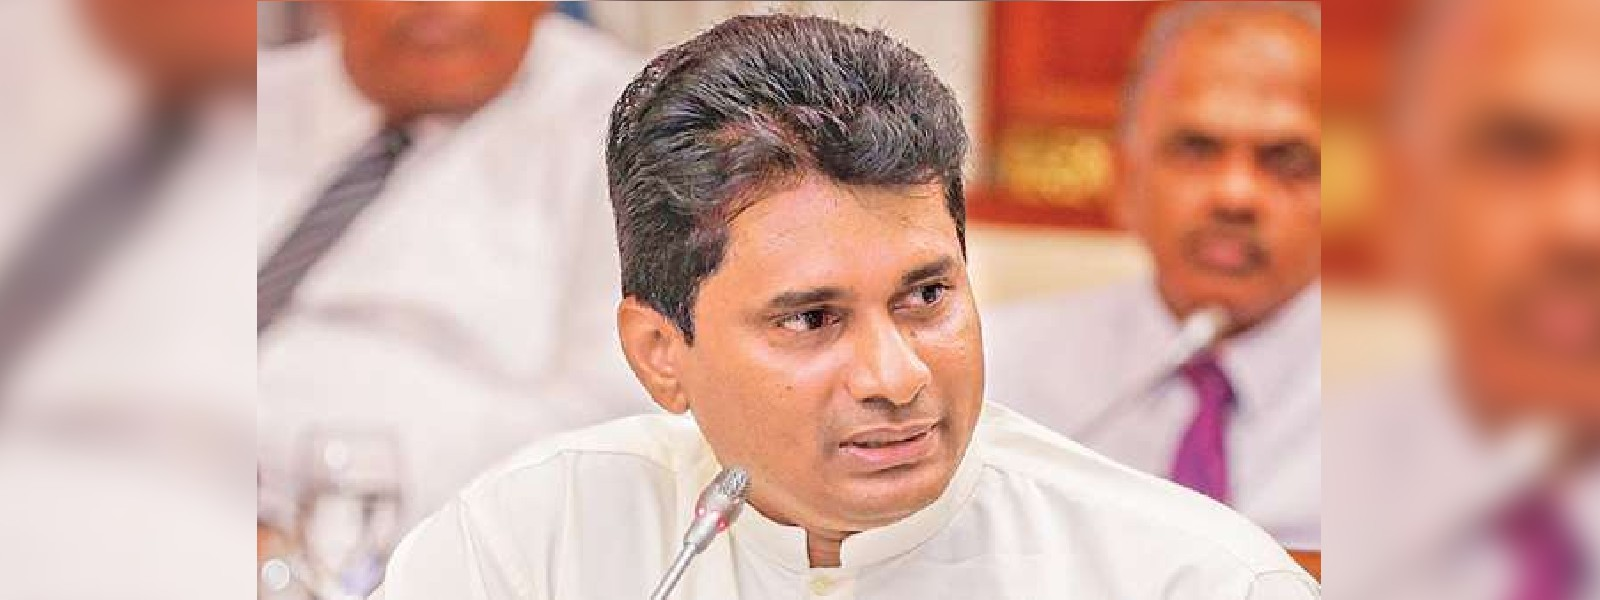 Professor Channa Jayasumana appointed as Acting Health Minister